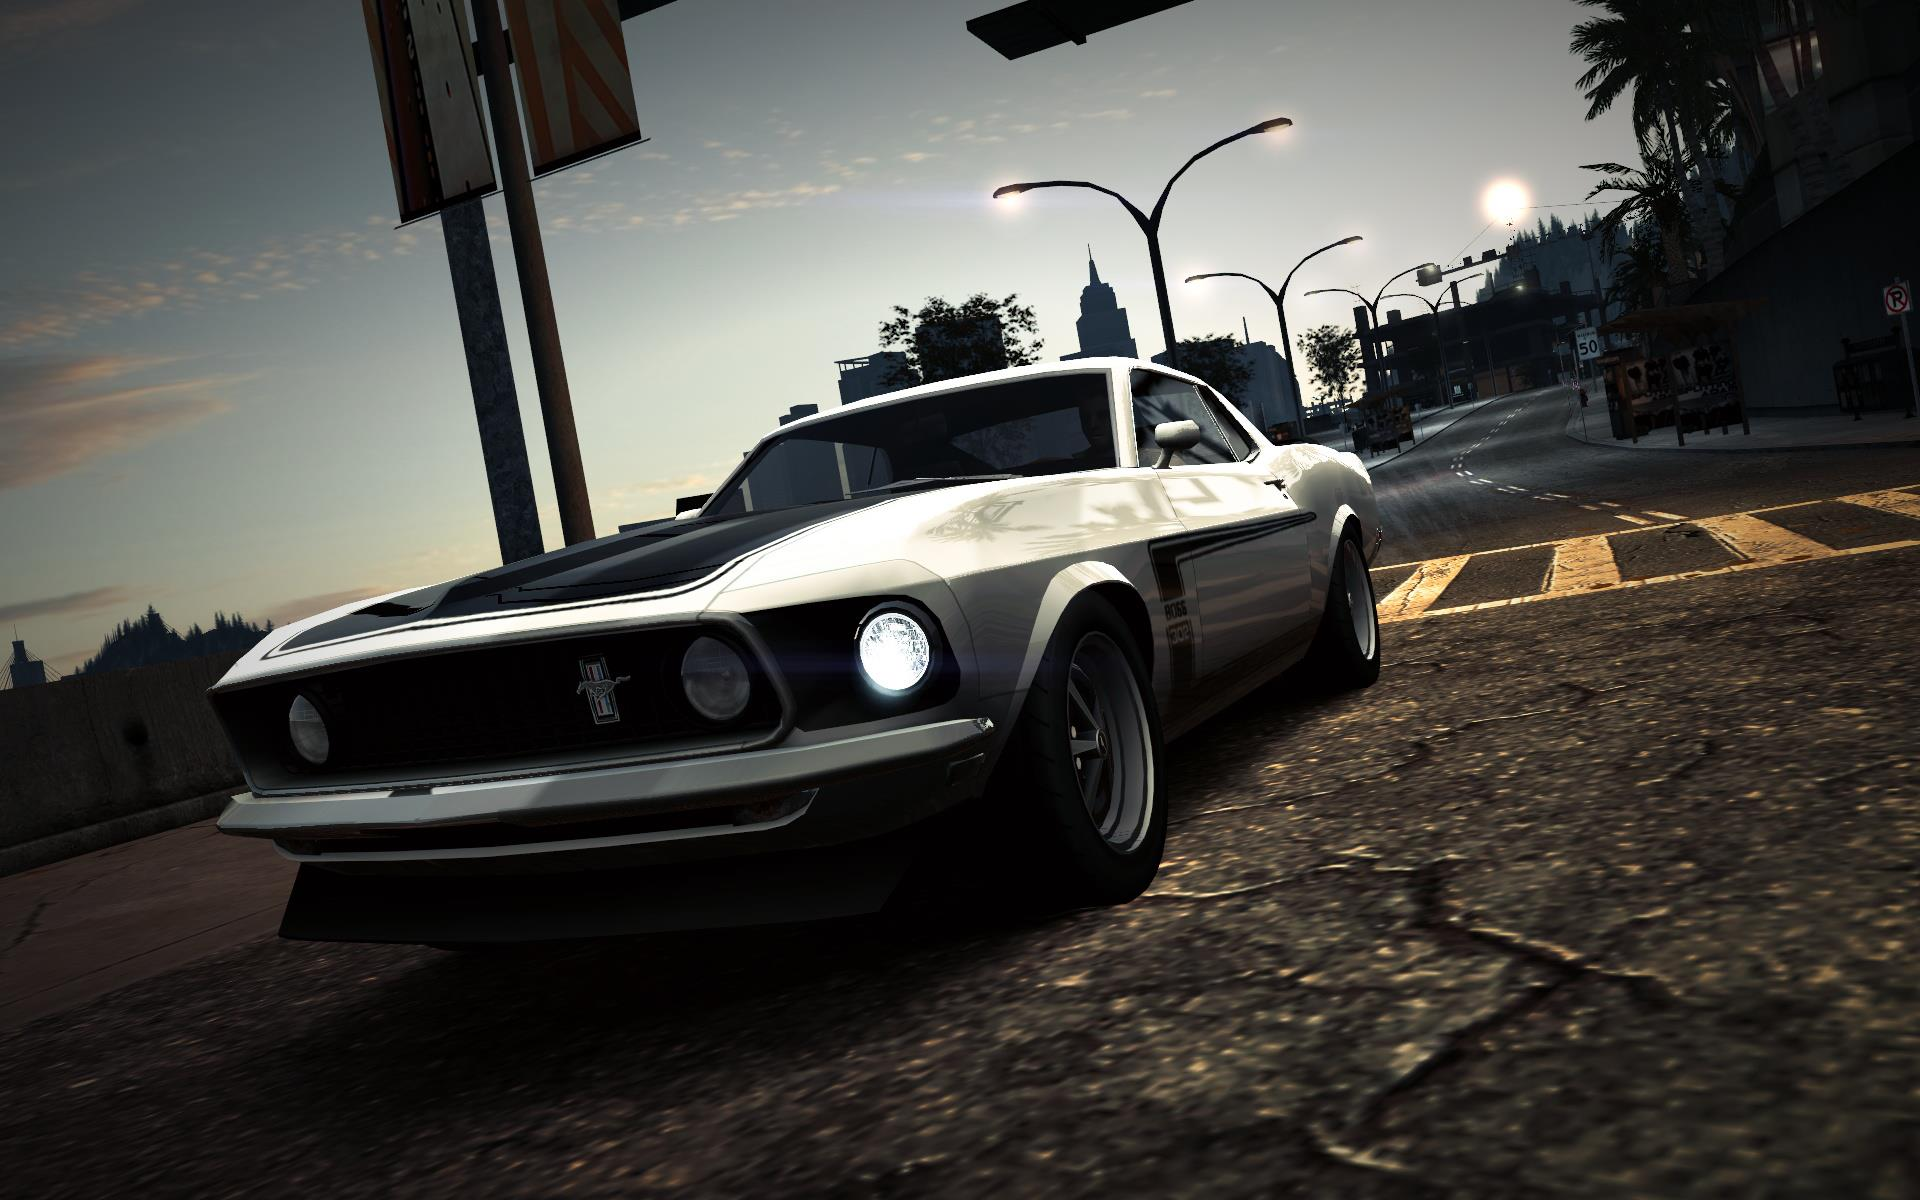 Mustang Boss 302 Returns - Pursuitist